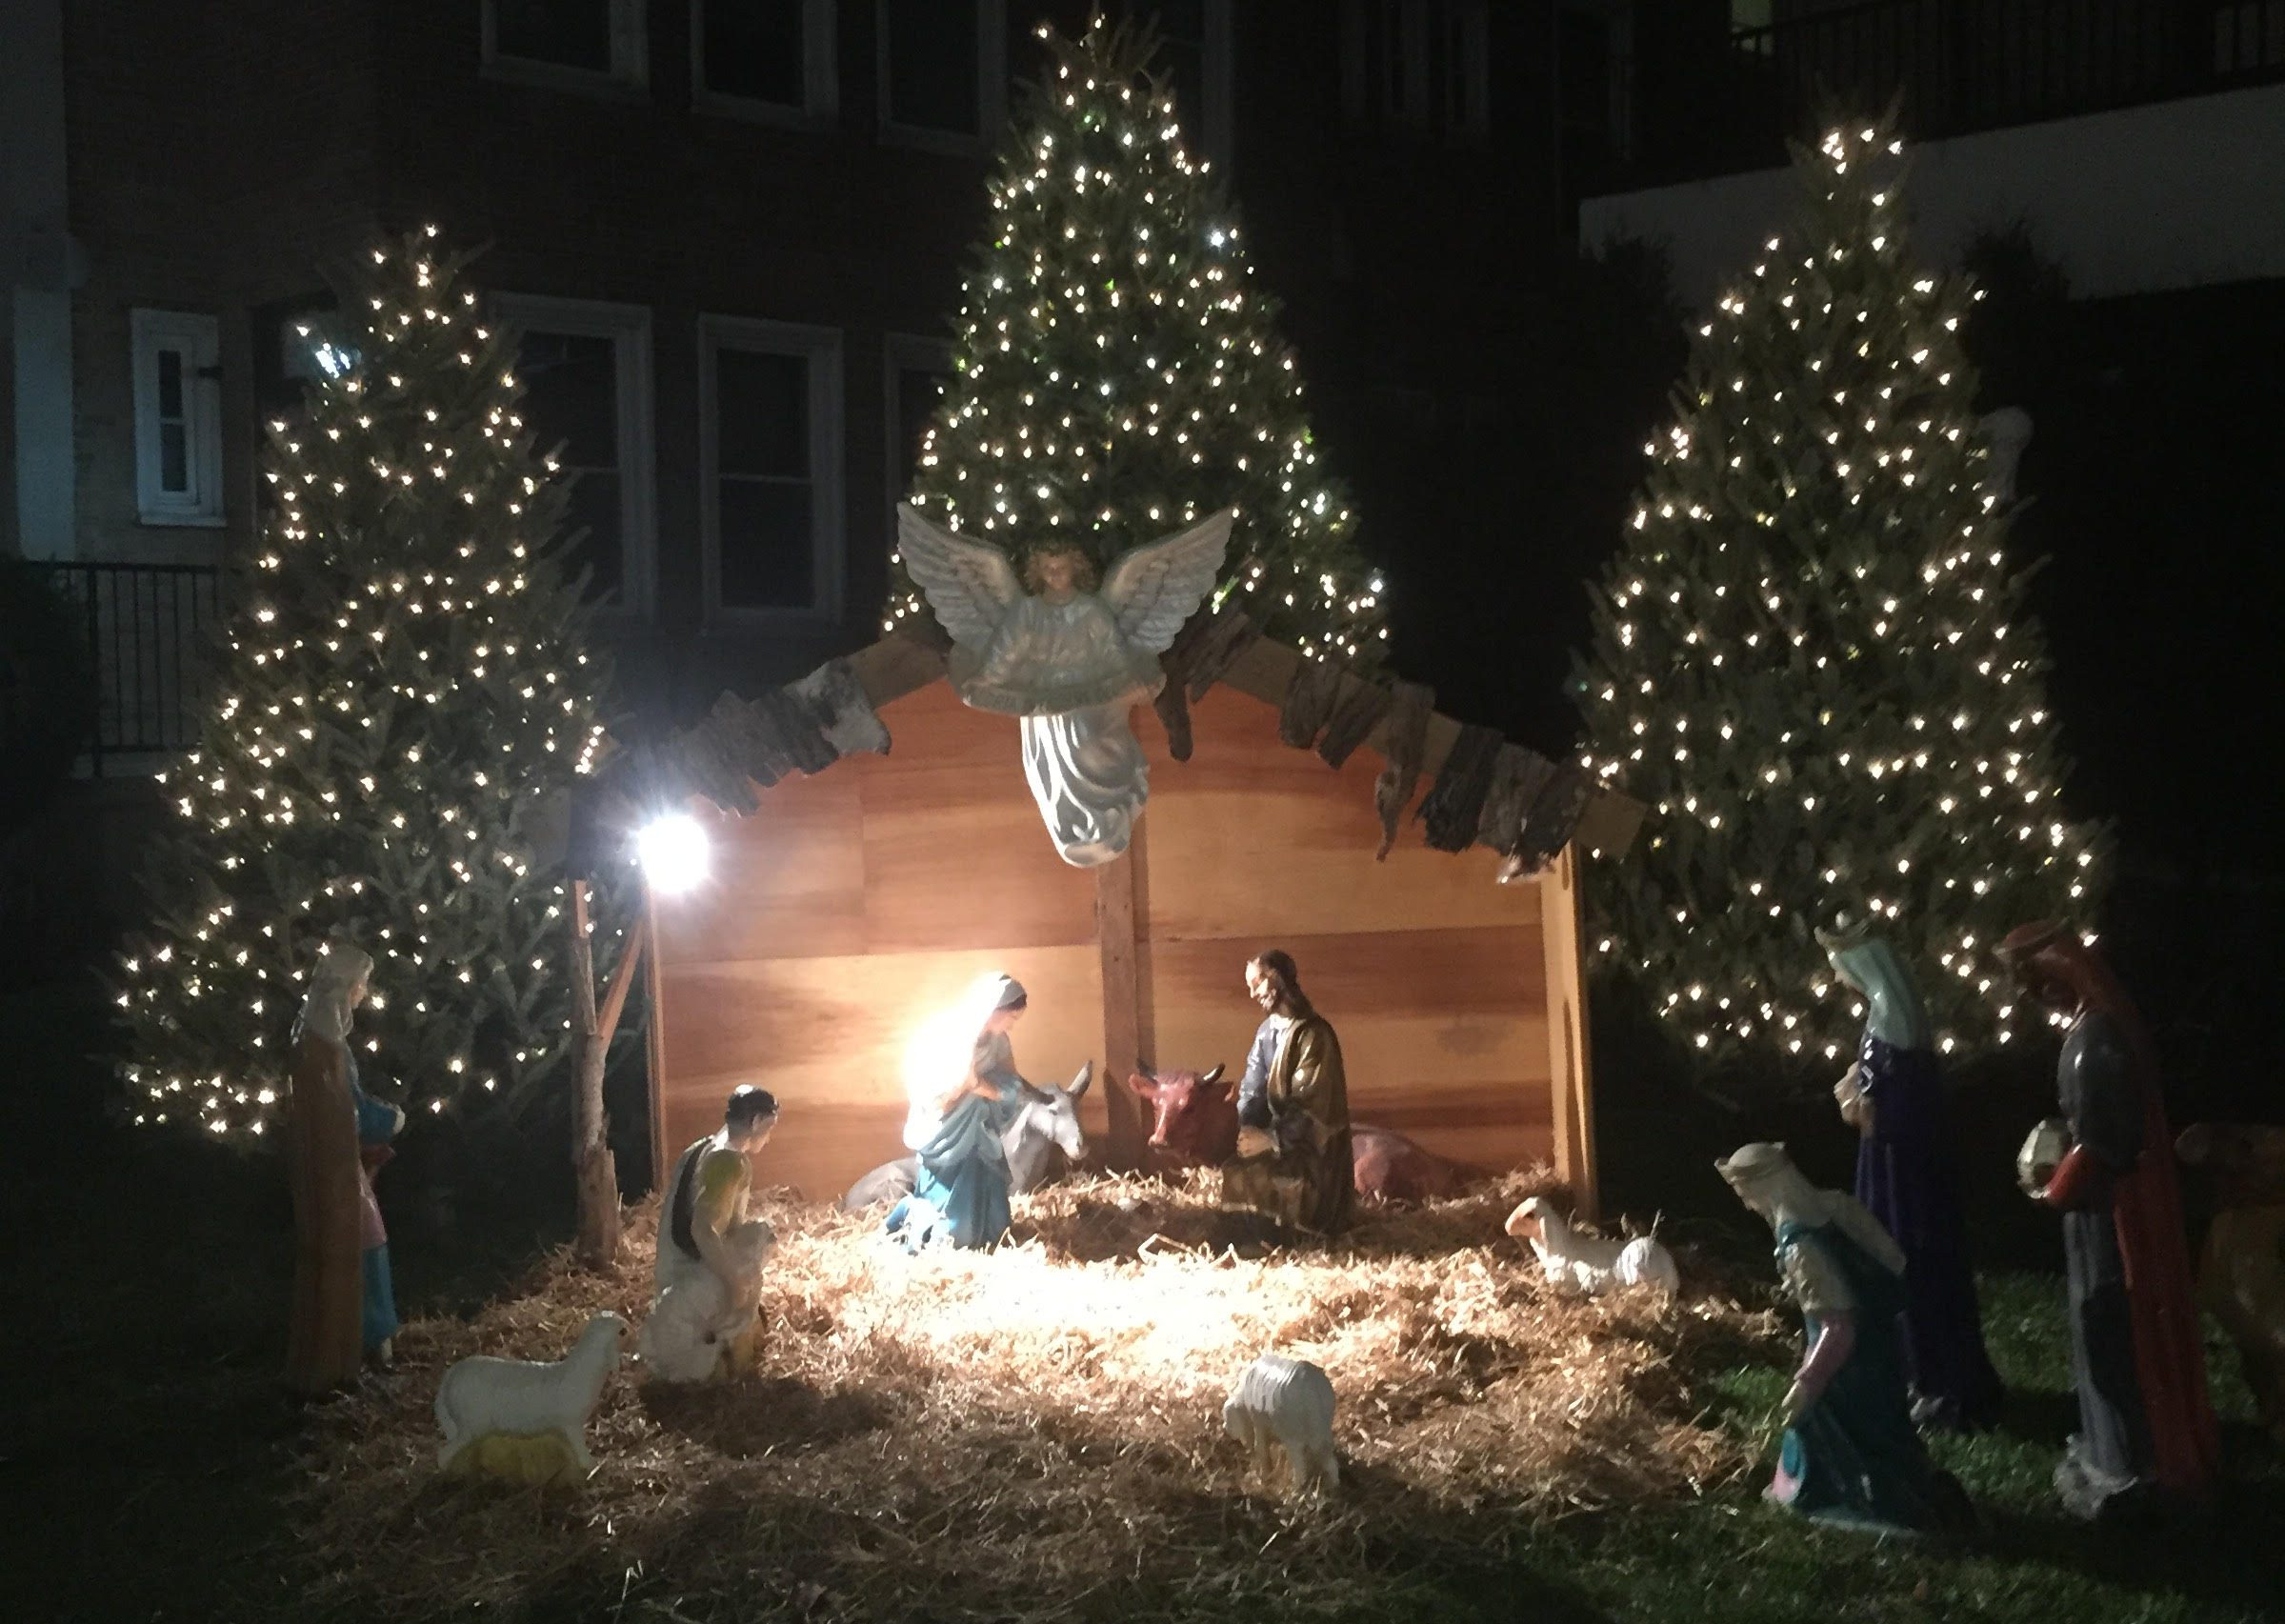 michael bonetti shares the christmas decorations and nativity